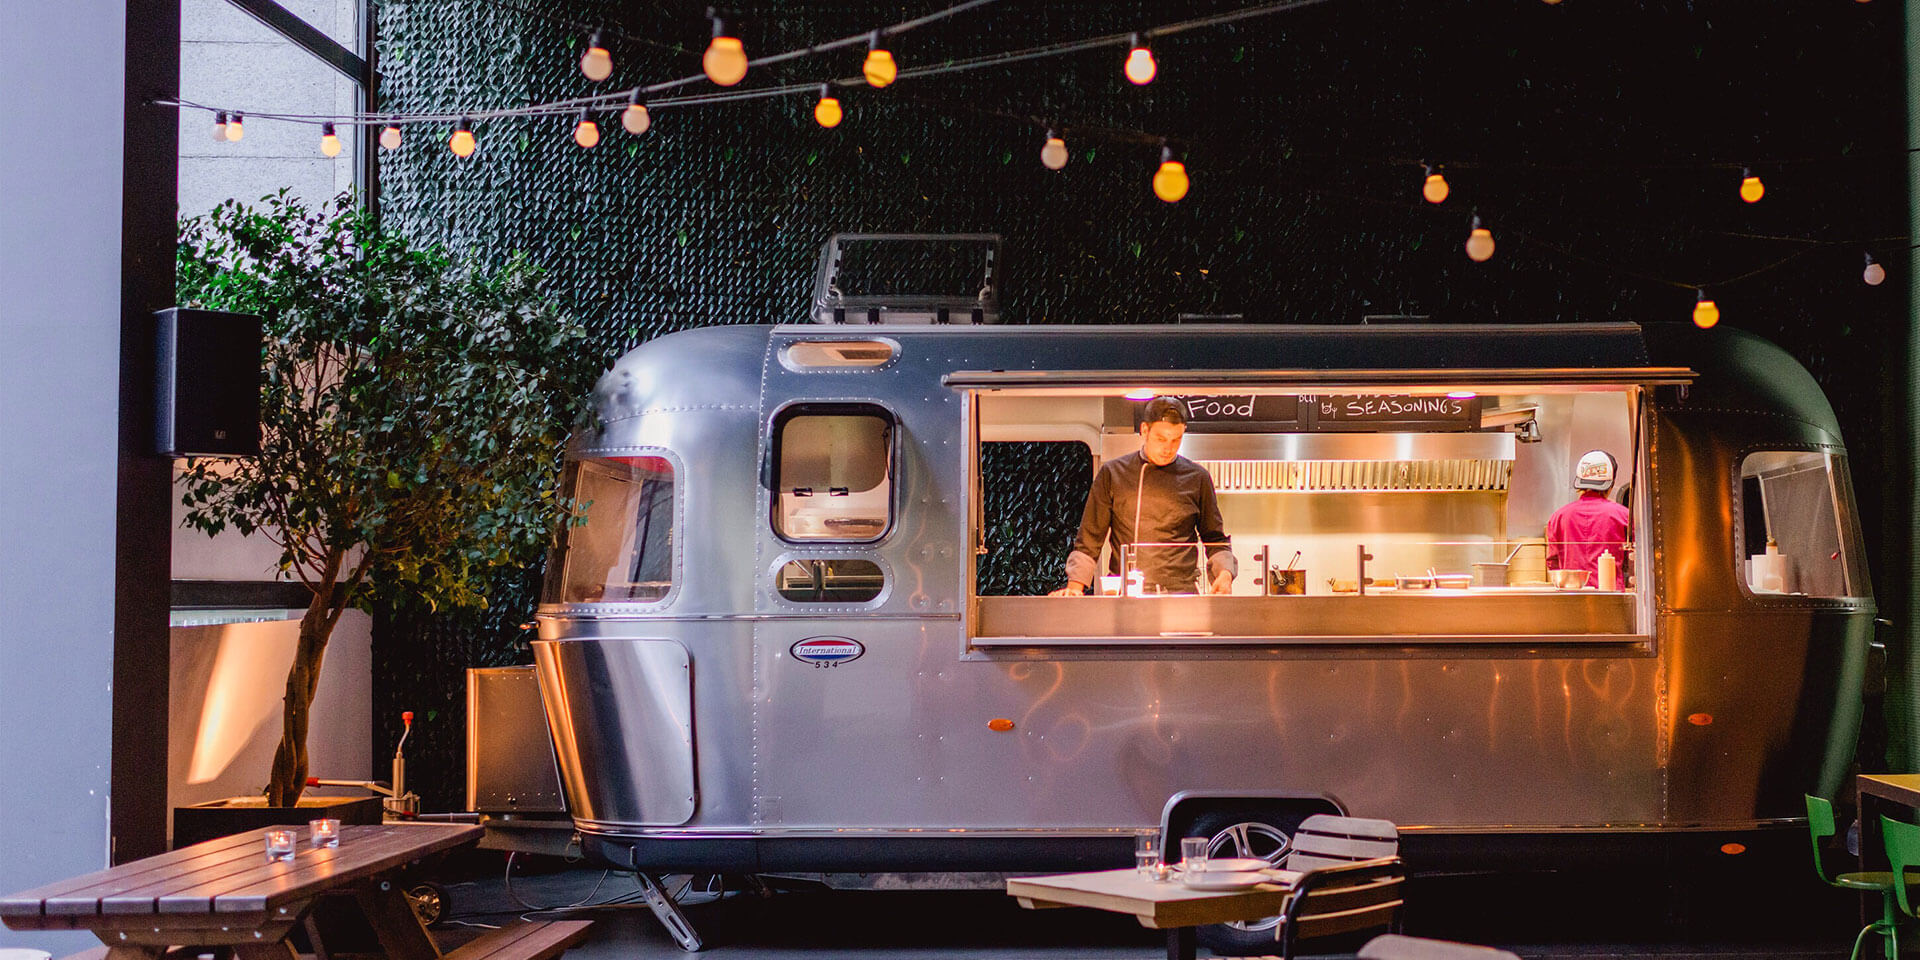 Restaurants and technology: 4 ways to capitalize on top trends